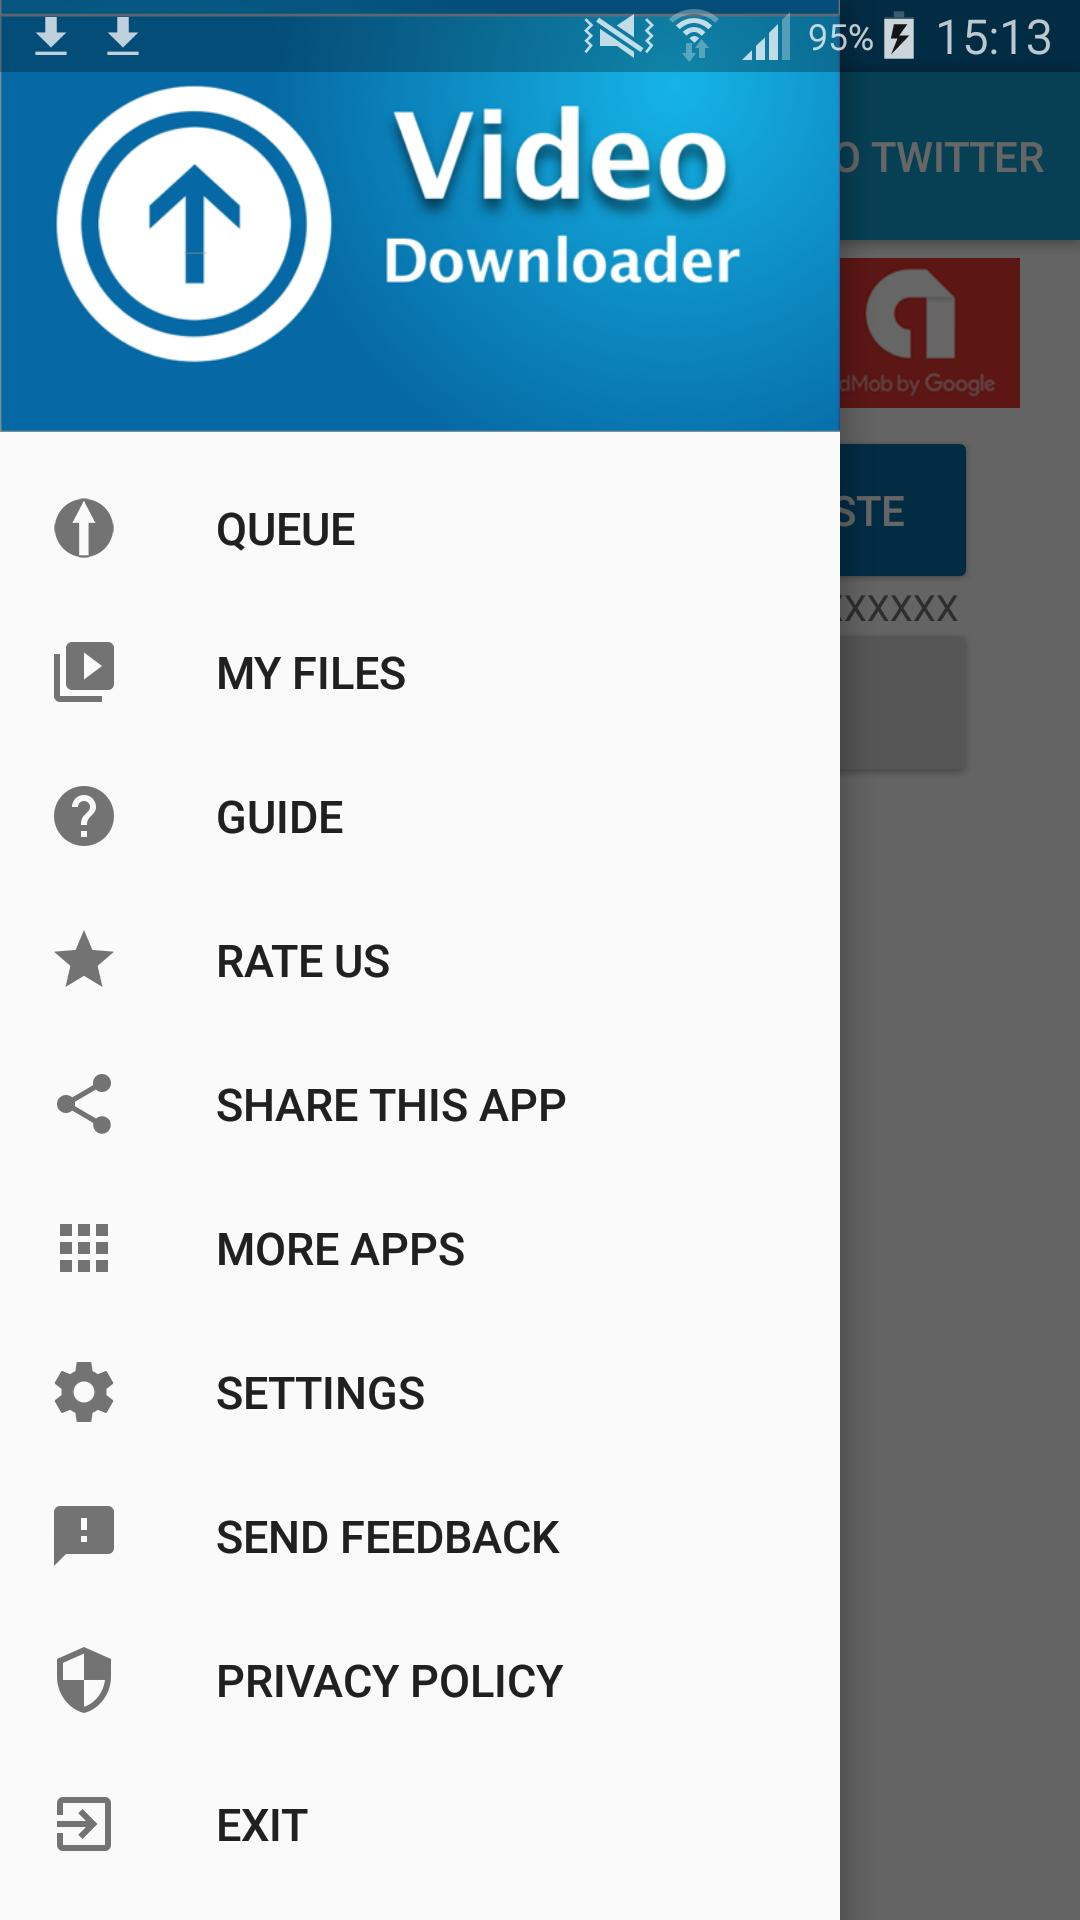 Download Twitter Videos for Android   APK Download